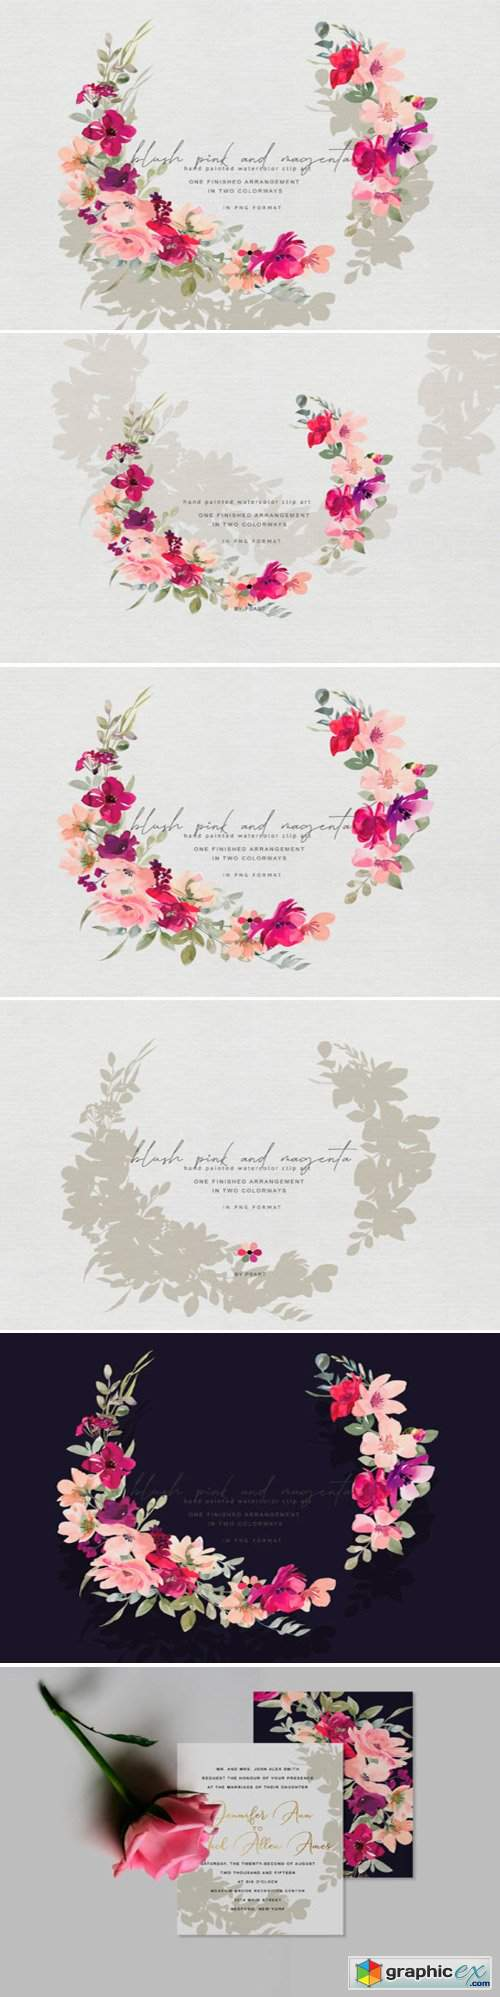 Hand Painted Watercolor Floral Wreath